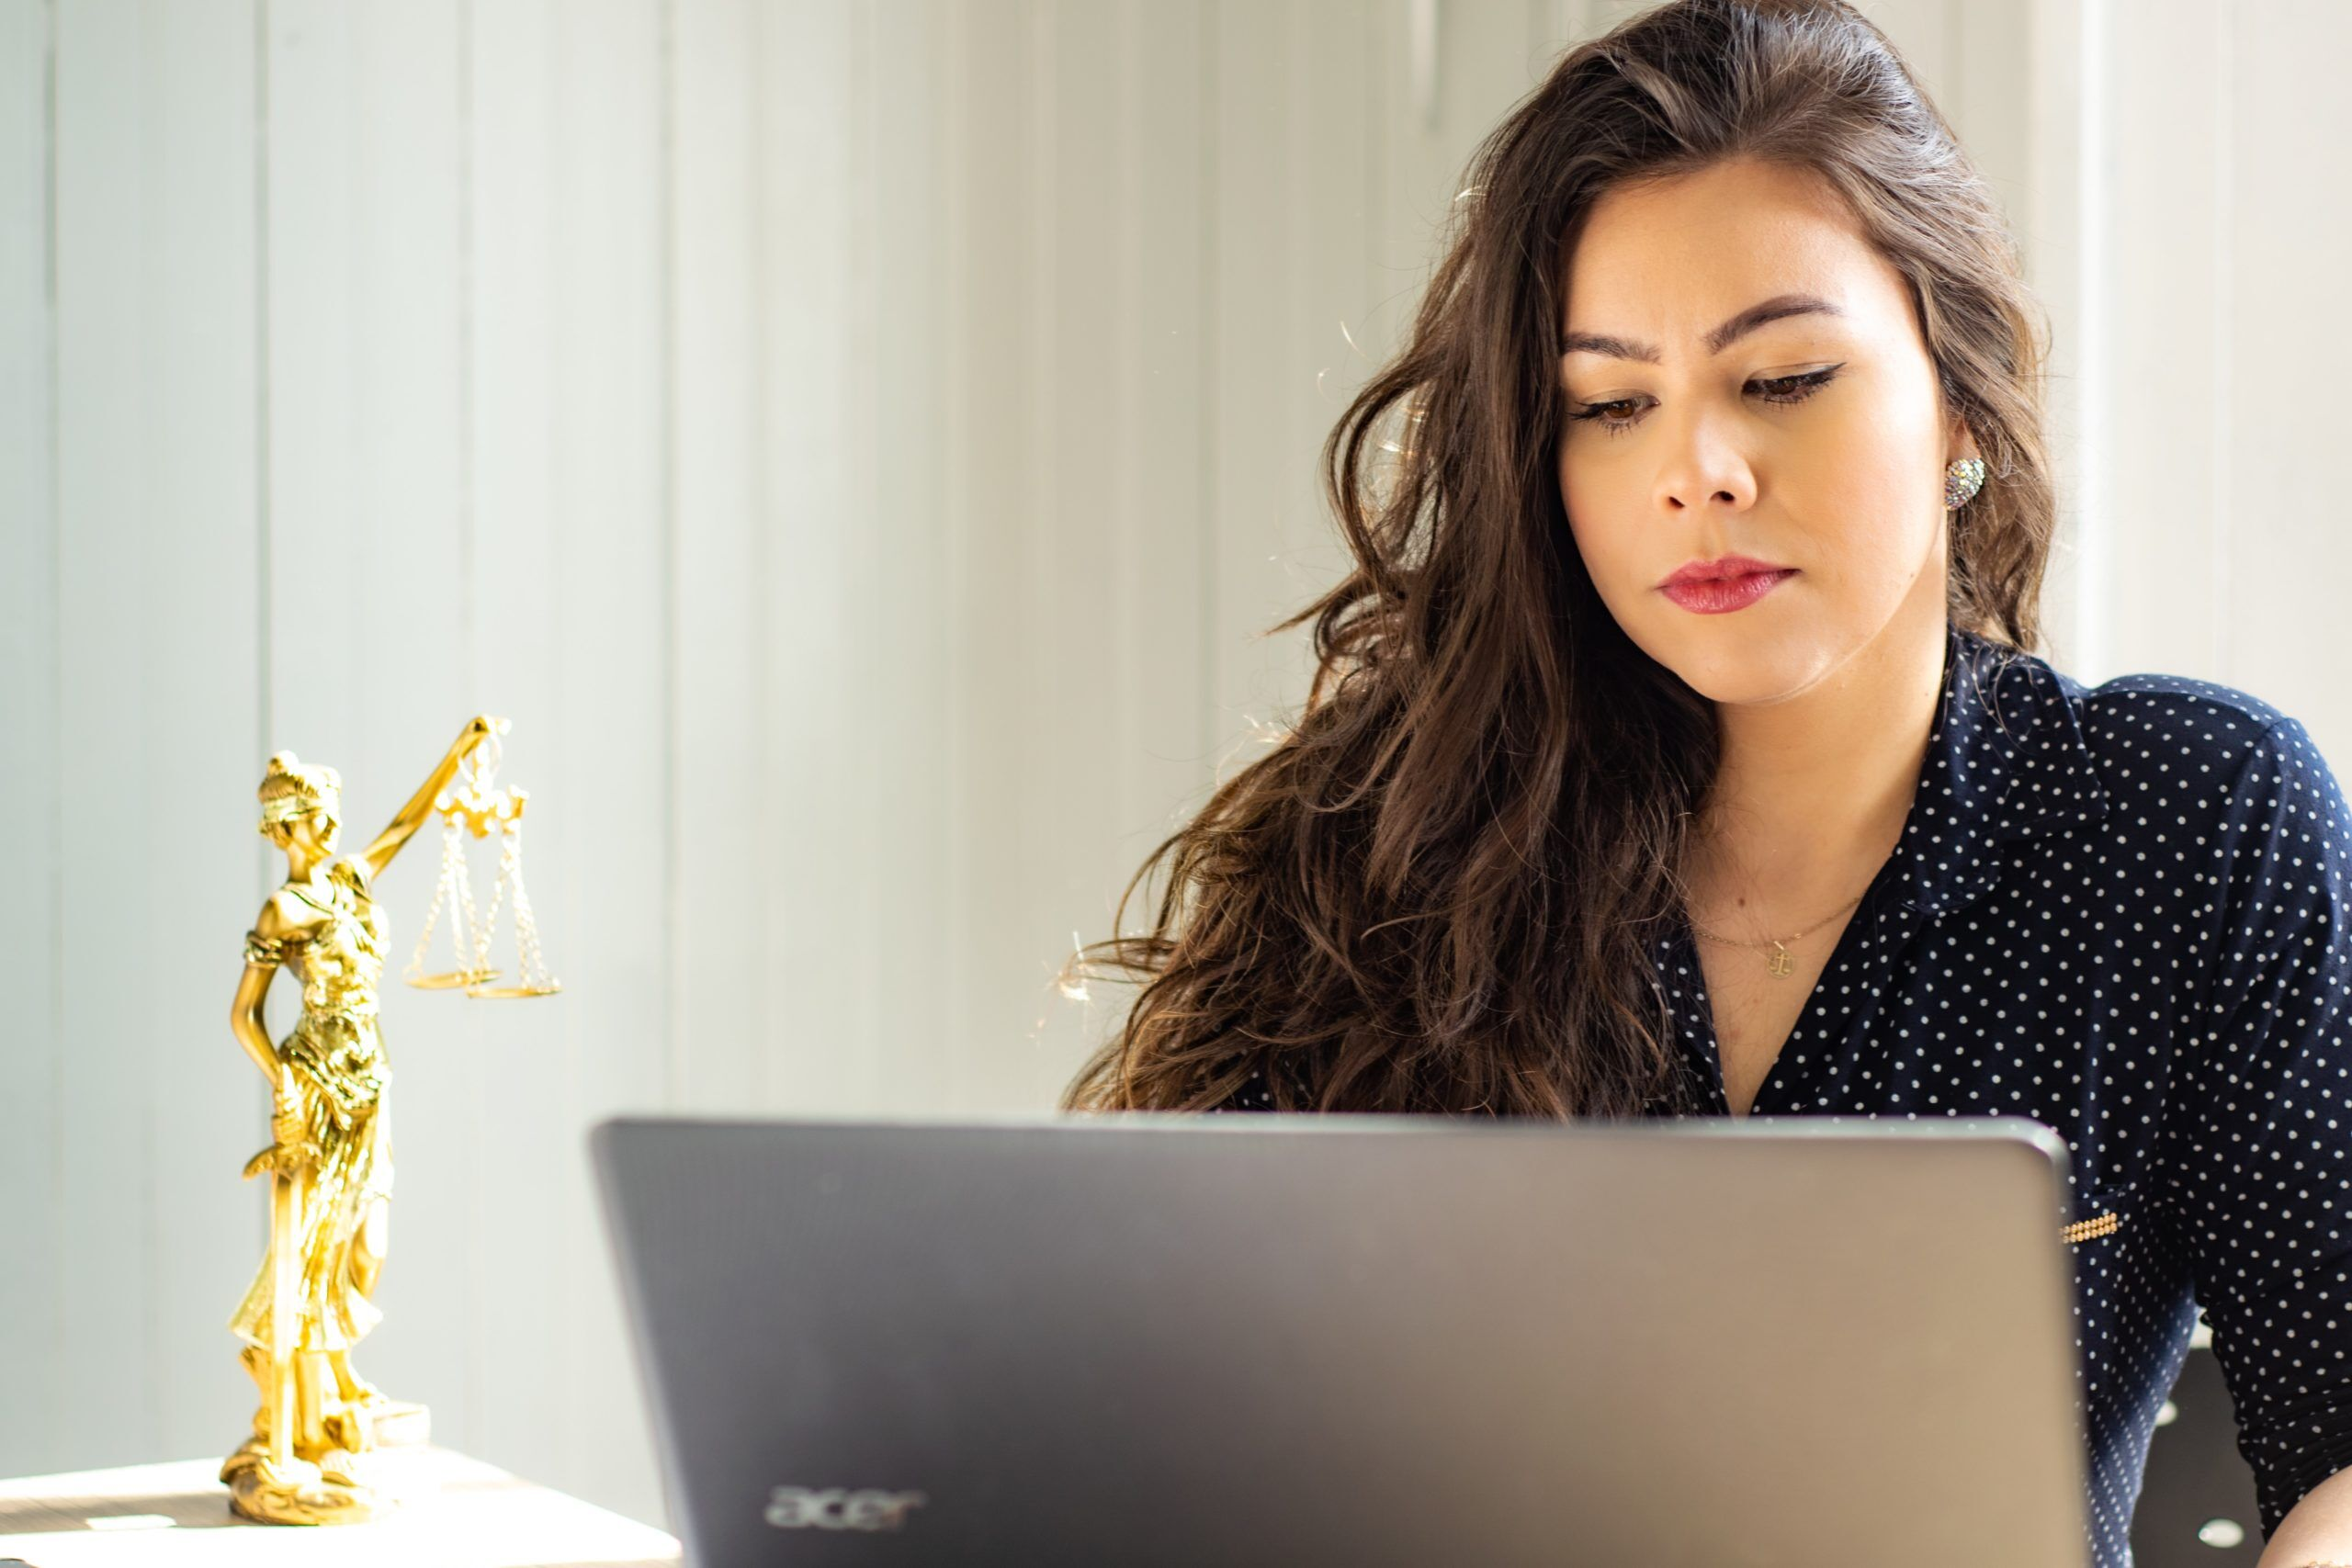 Woman lawyer on computer with lady justice